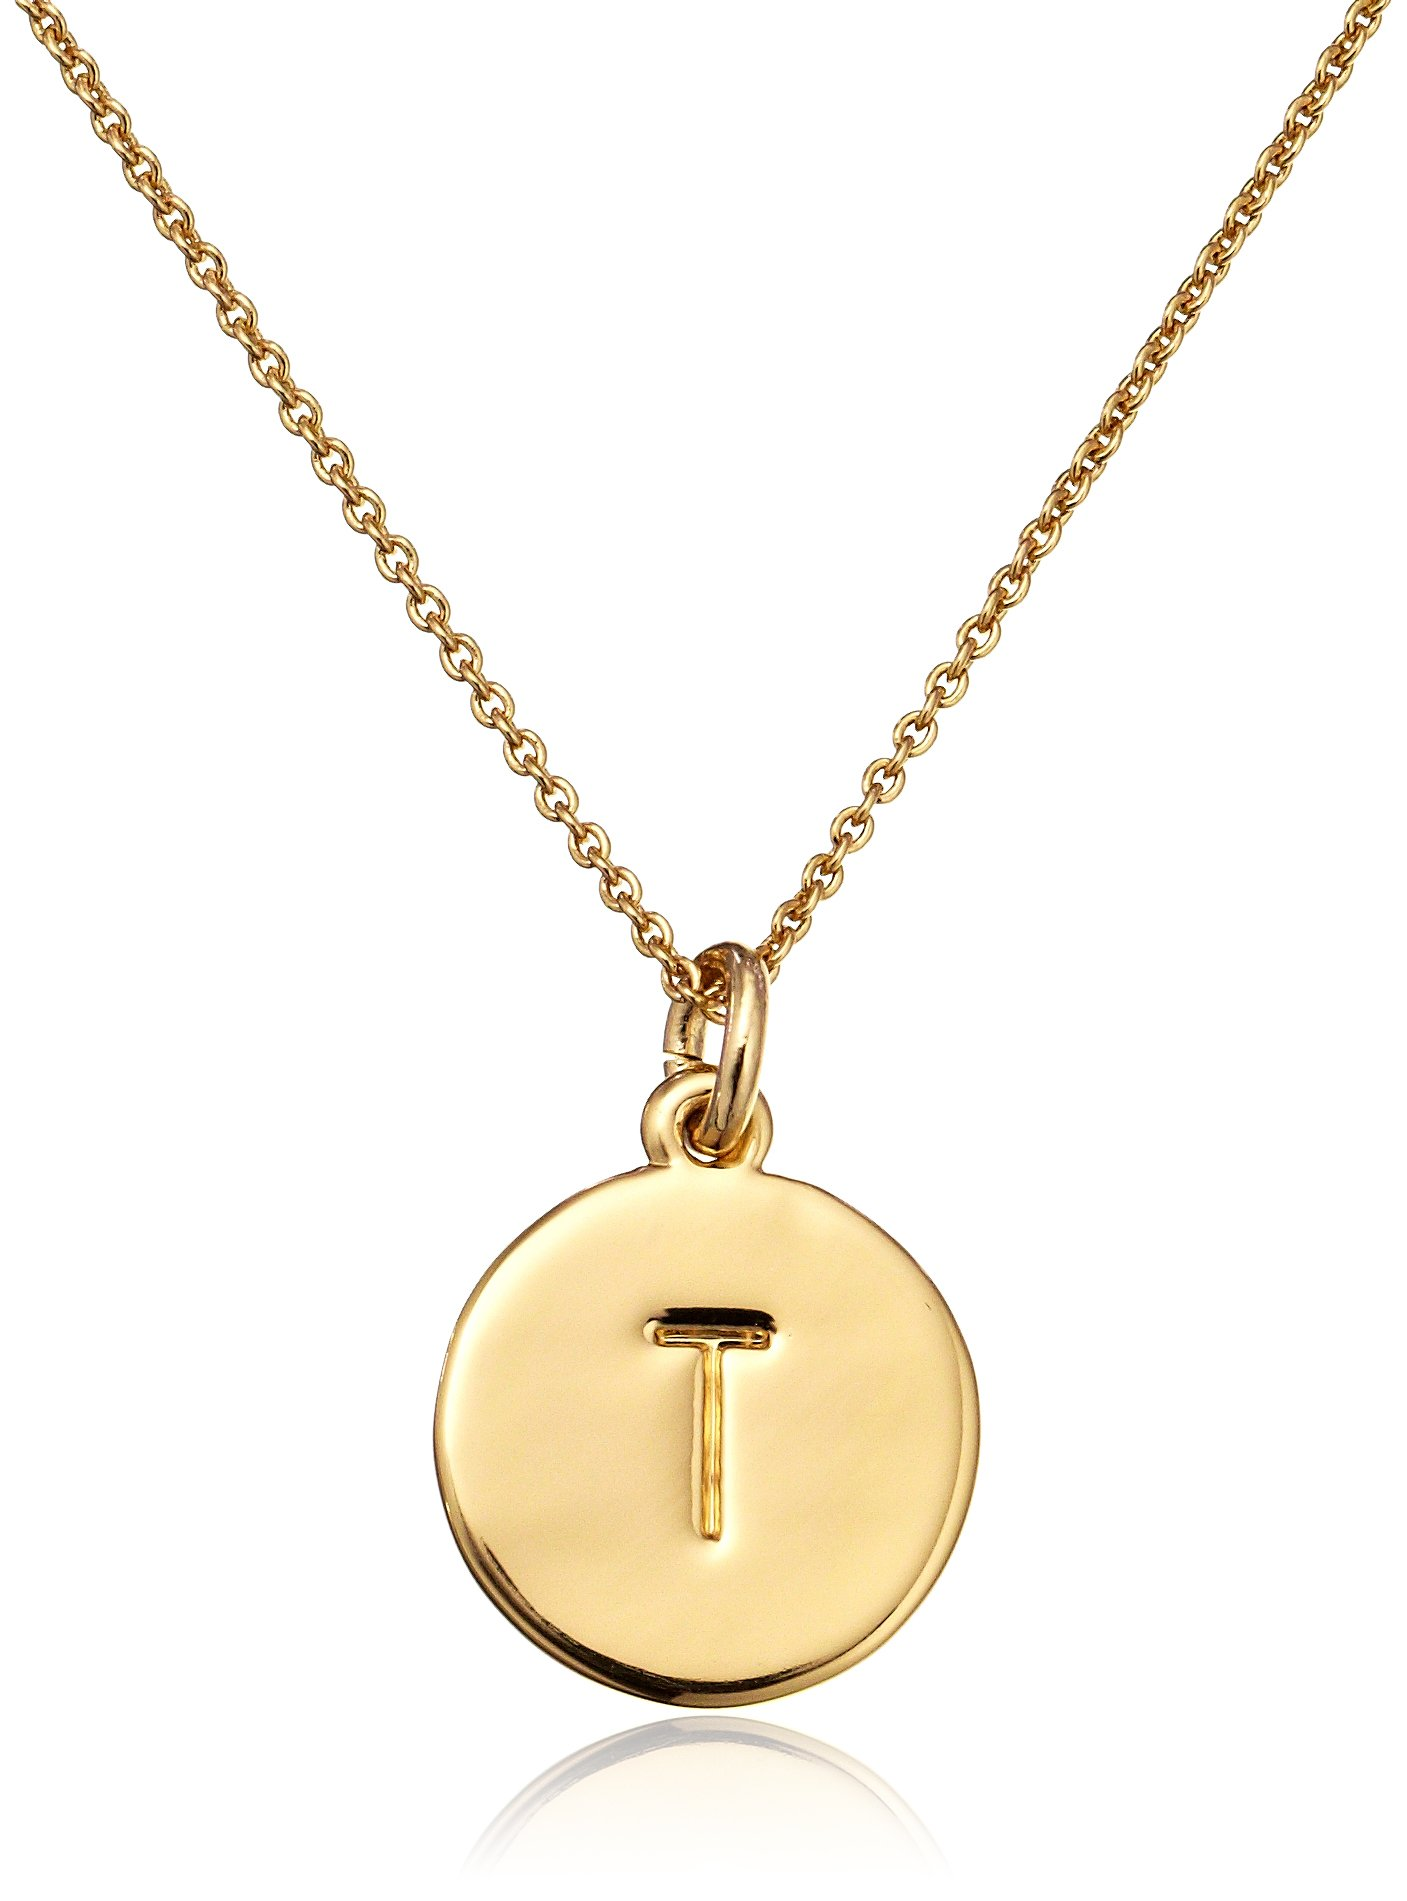 Kate Spade New York ''Kate Spade Pendants T Pendant Necklace, 18'' by Kate Spade New York (Image #1)